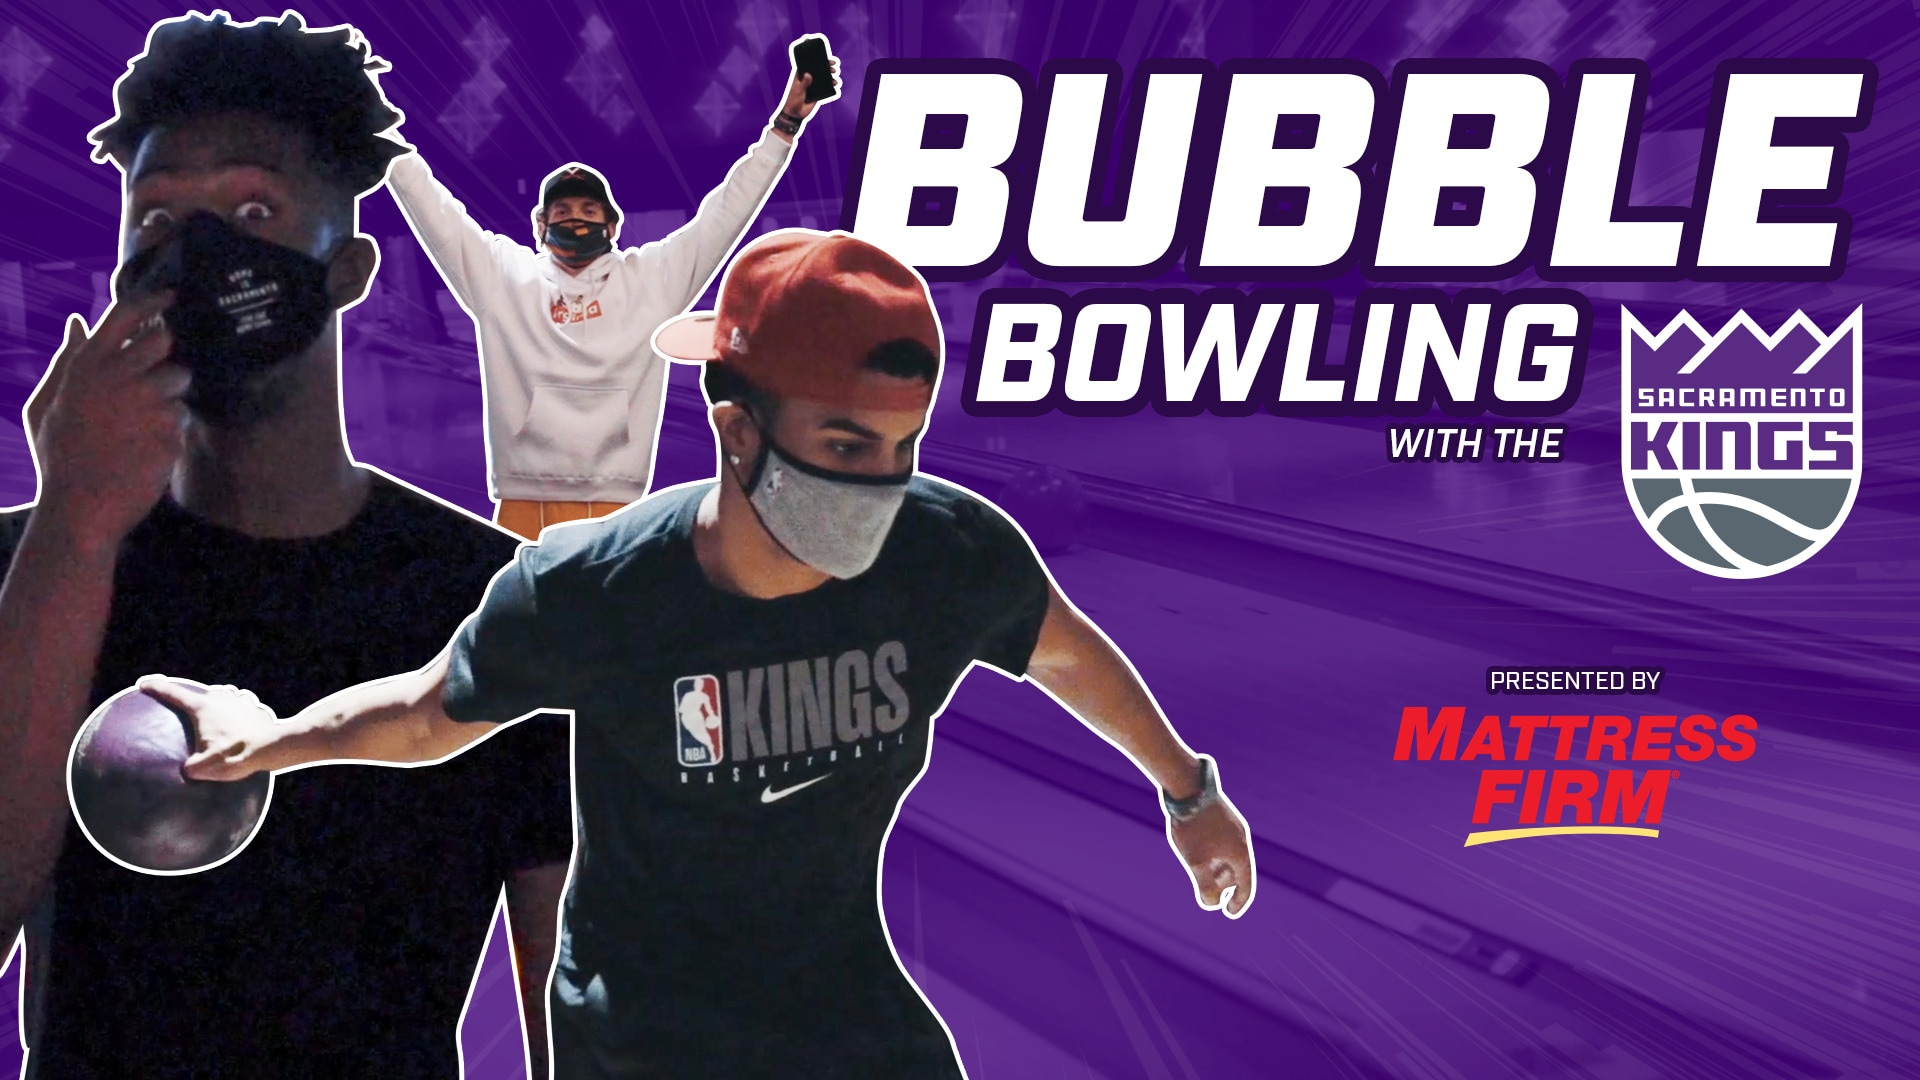 BUBBLE BOWLING with the KINGS!